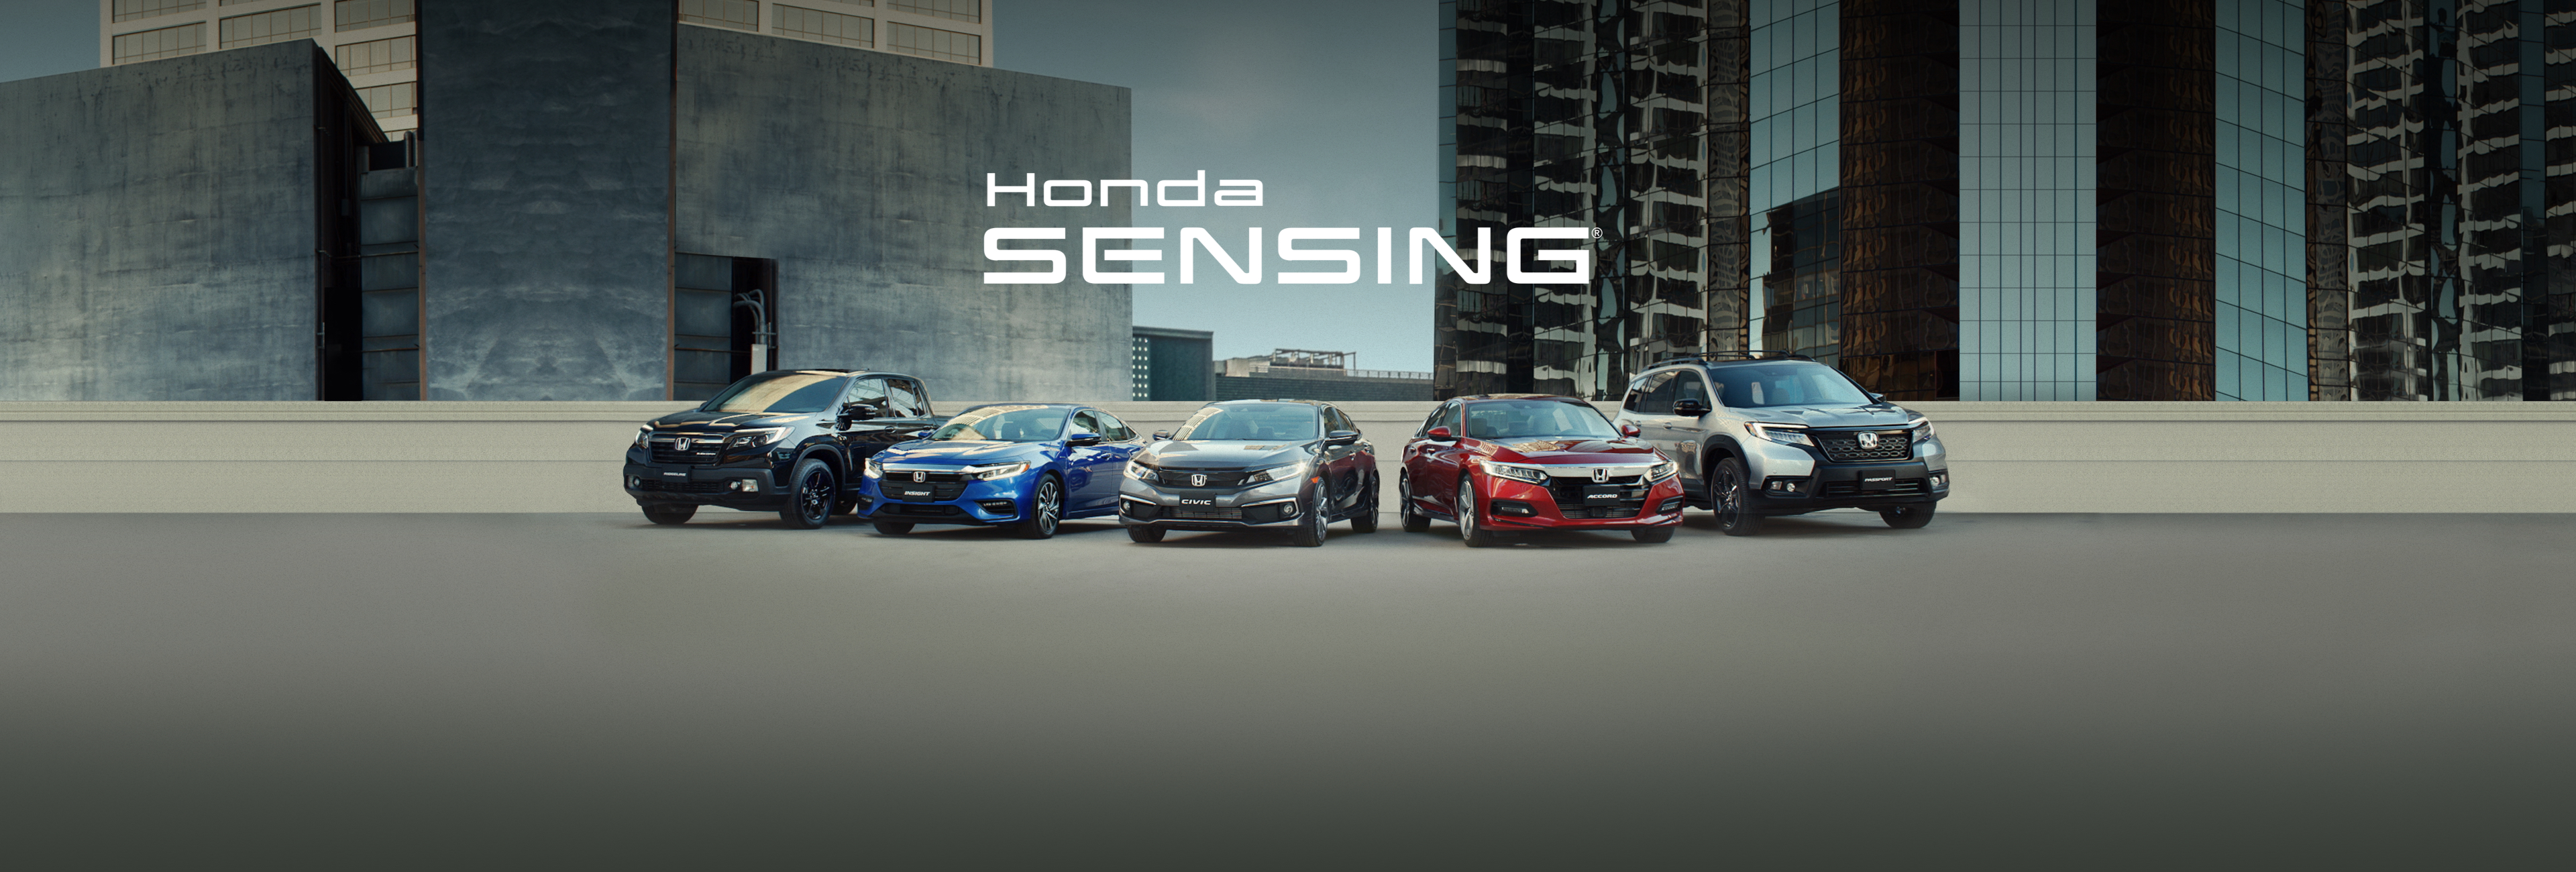 Vehicles equipped with Honda Sensing®, including the 2019 Honda Ridgeline, Insight, Civic Sedan, Accord and Passport, shown in an urban environment.